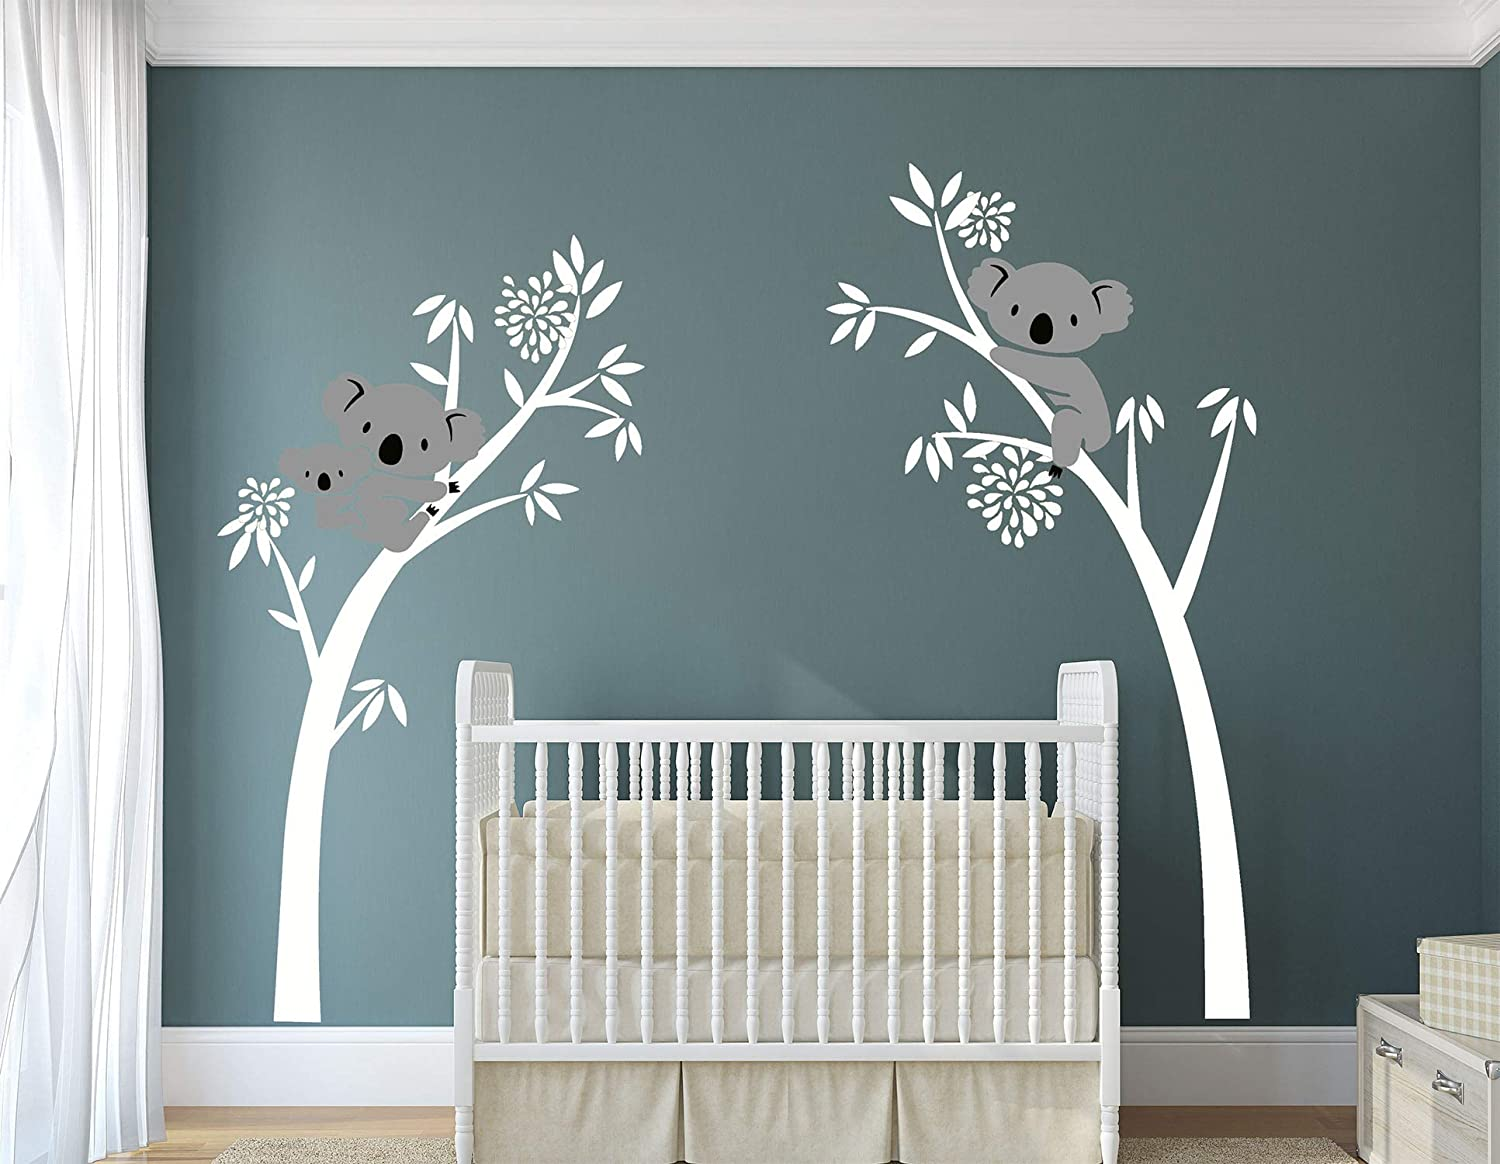 LUCKKYY Three Koalas Tree Branches Wall Decal Wall Sticker Baby Nursery Decor Kids Room Decoration (White)